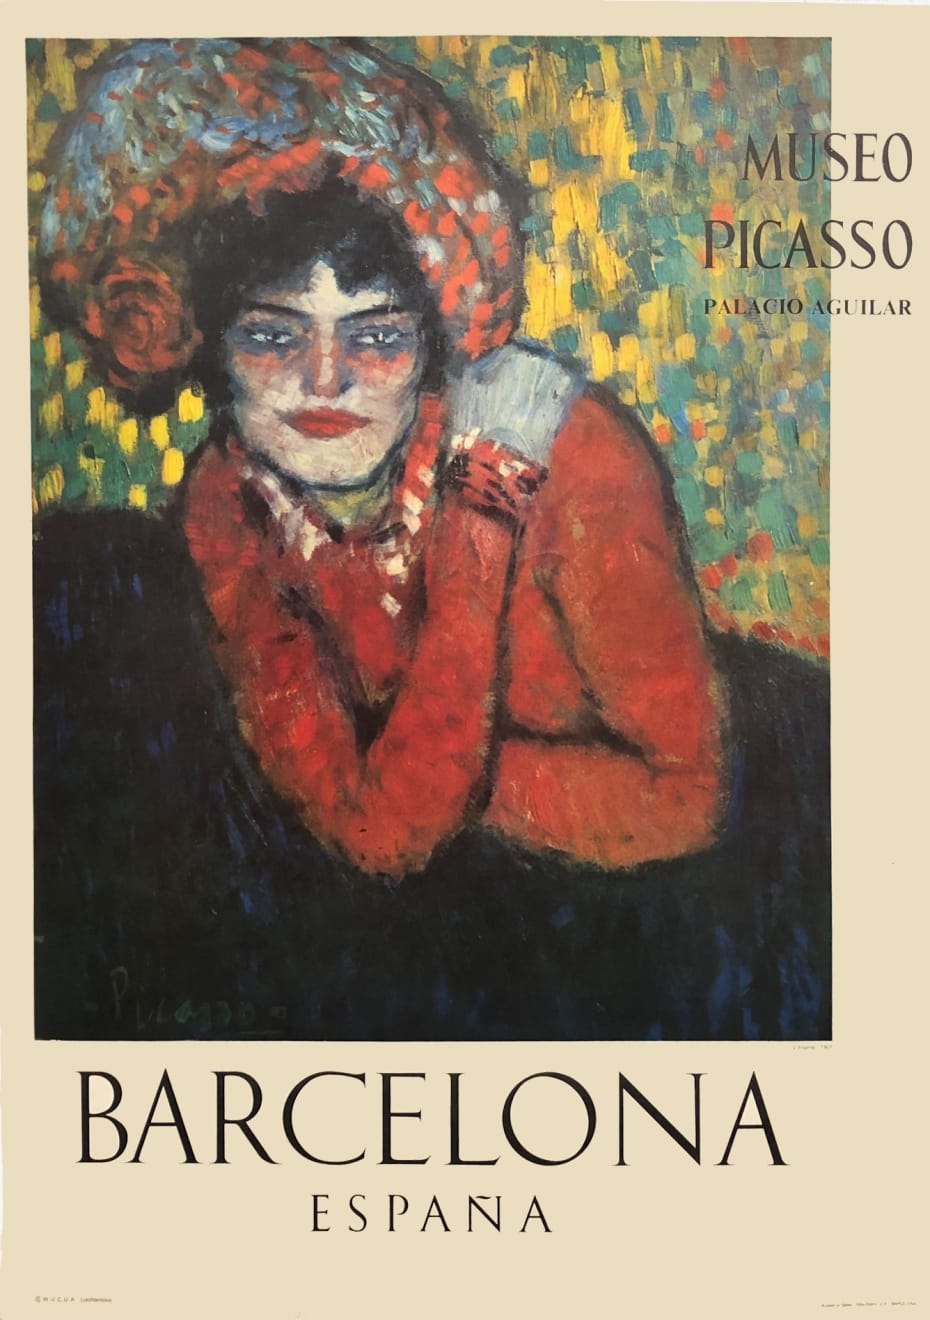 Pablo Picasso, Museo Picasso Barcelona Poster (Margot), 1966